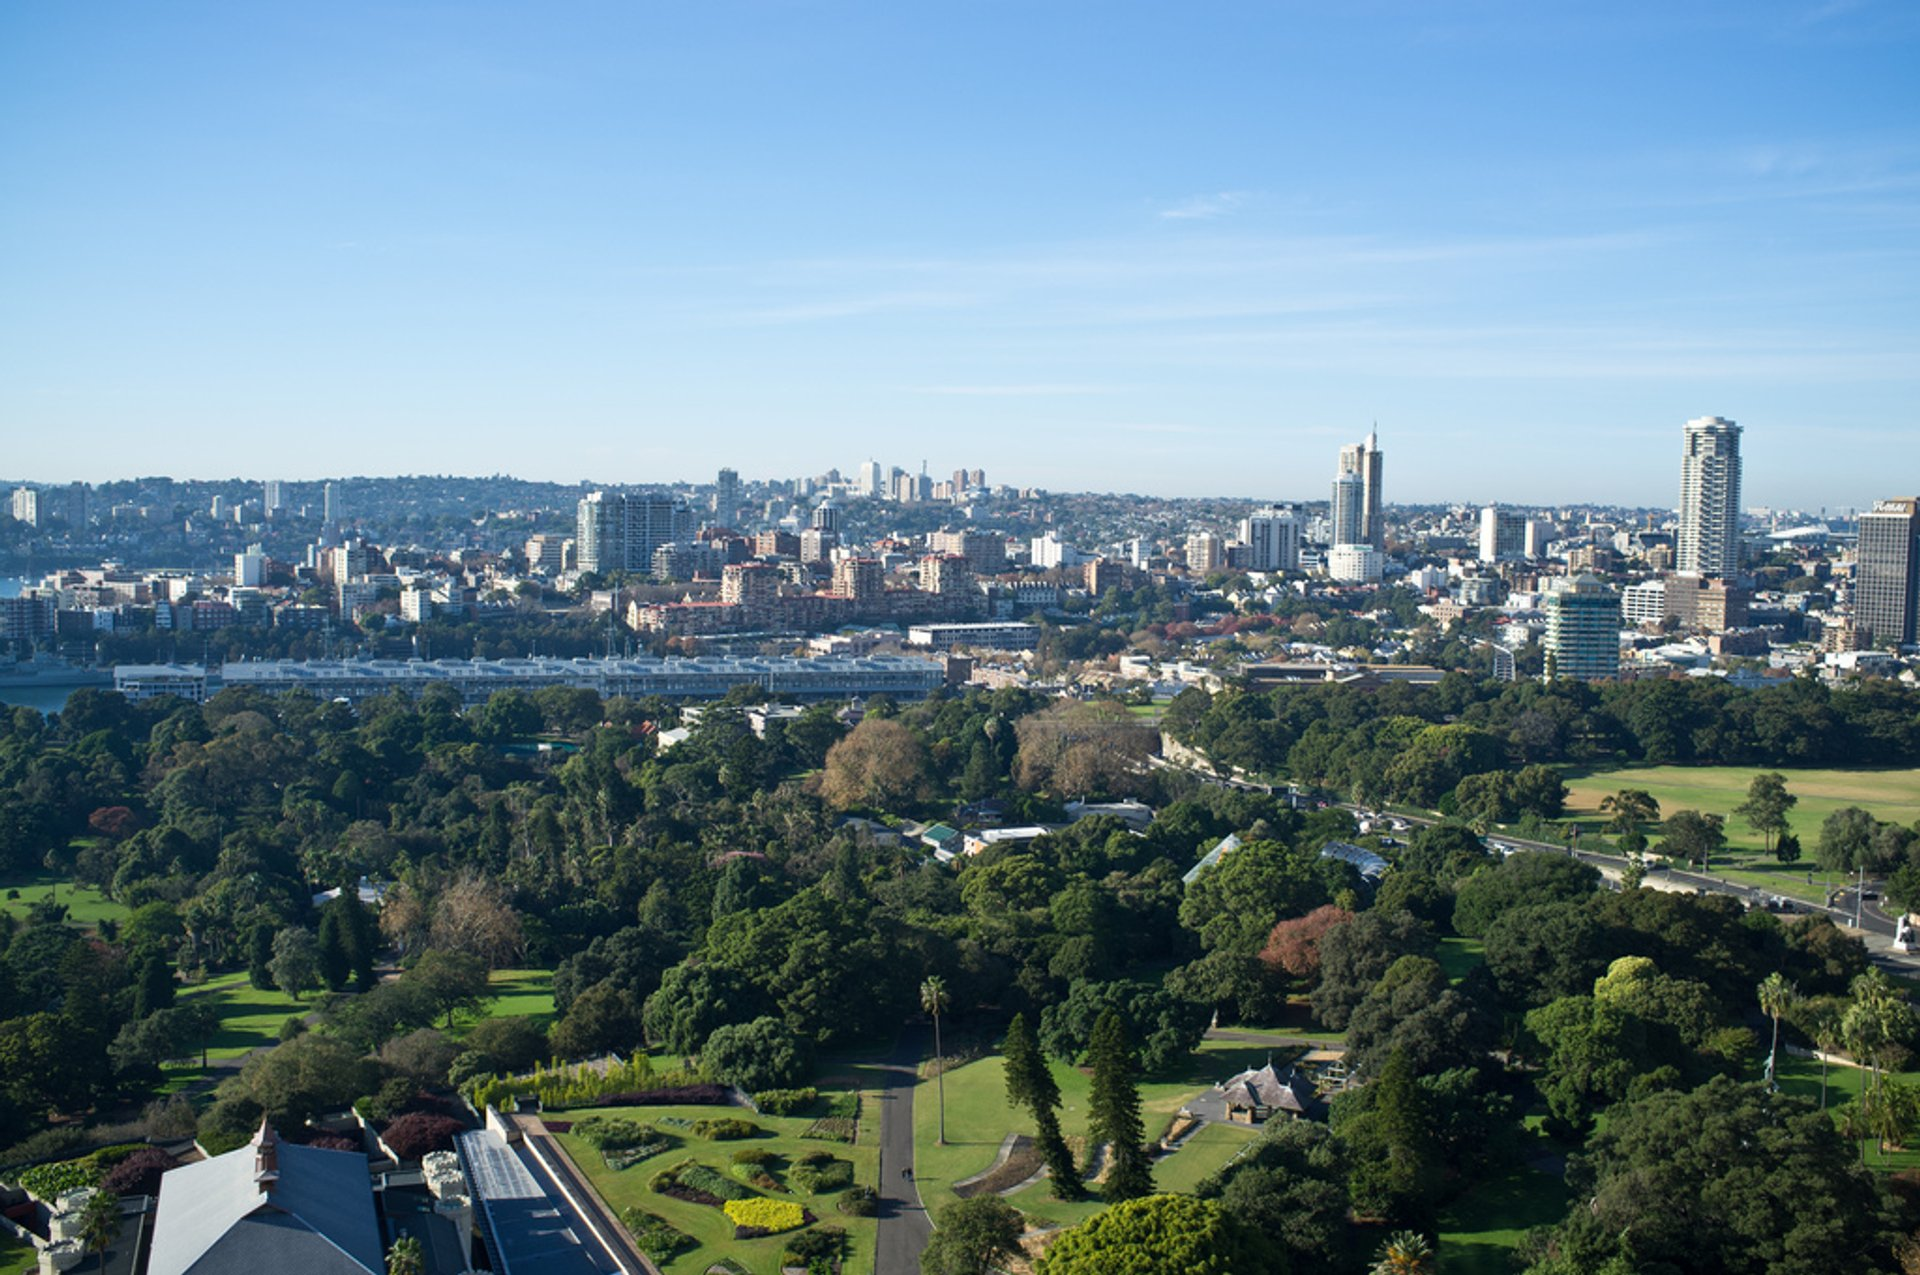 Looking out over the Royal Botanic Gardens 2020